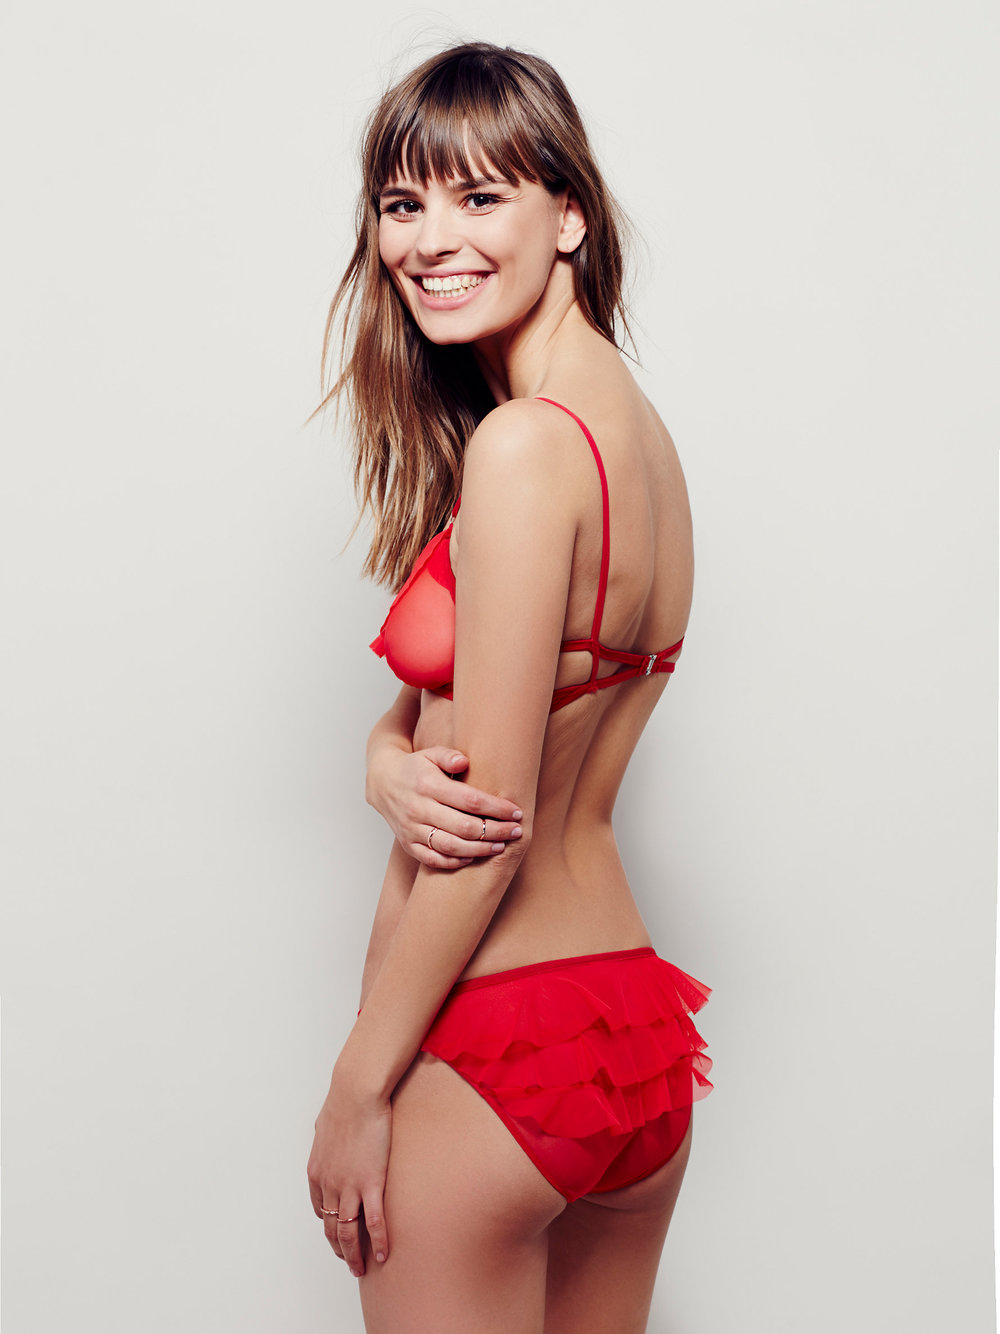 Free People bra $30 from $68, and panties $20 from $48